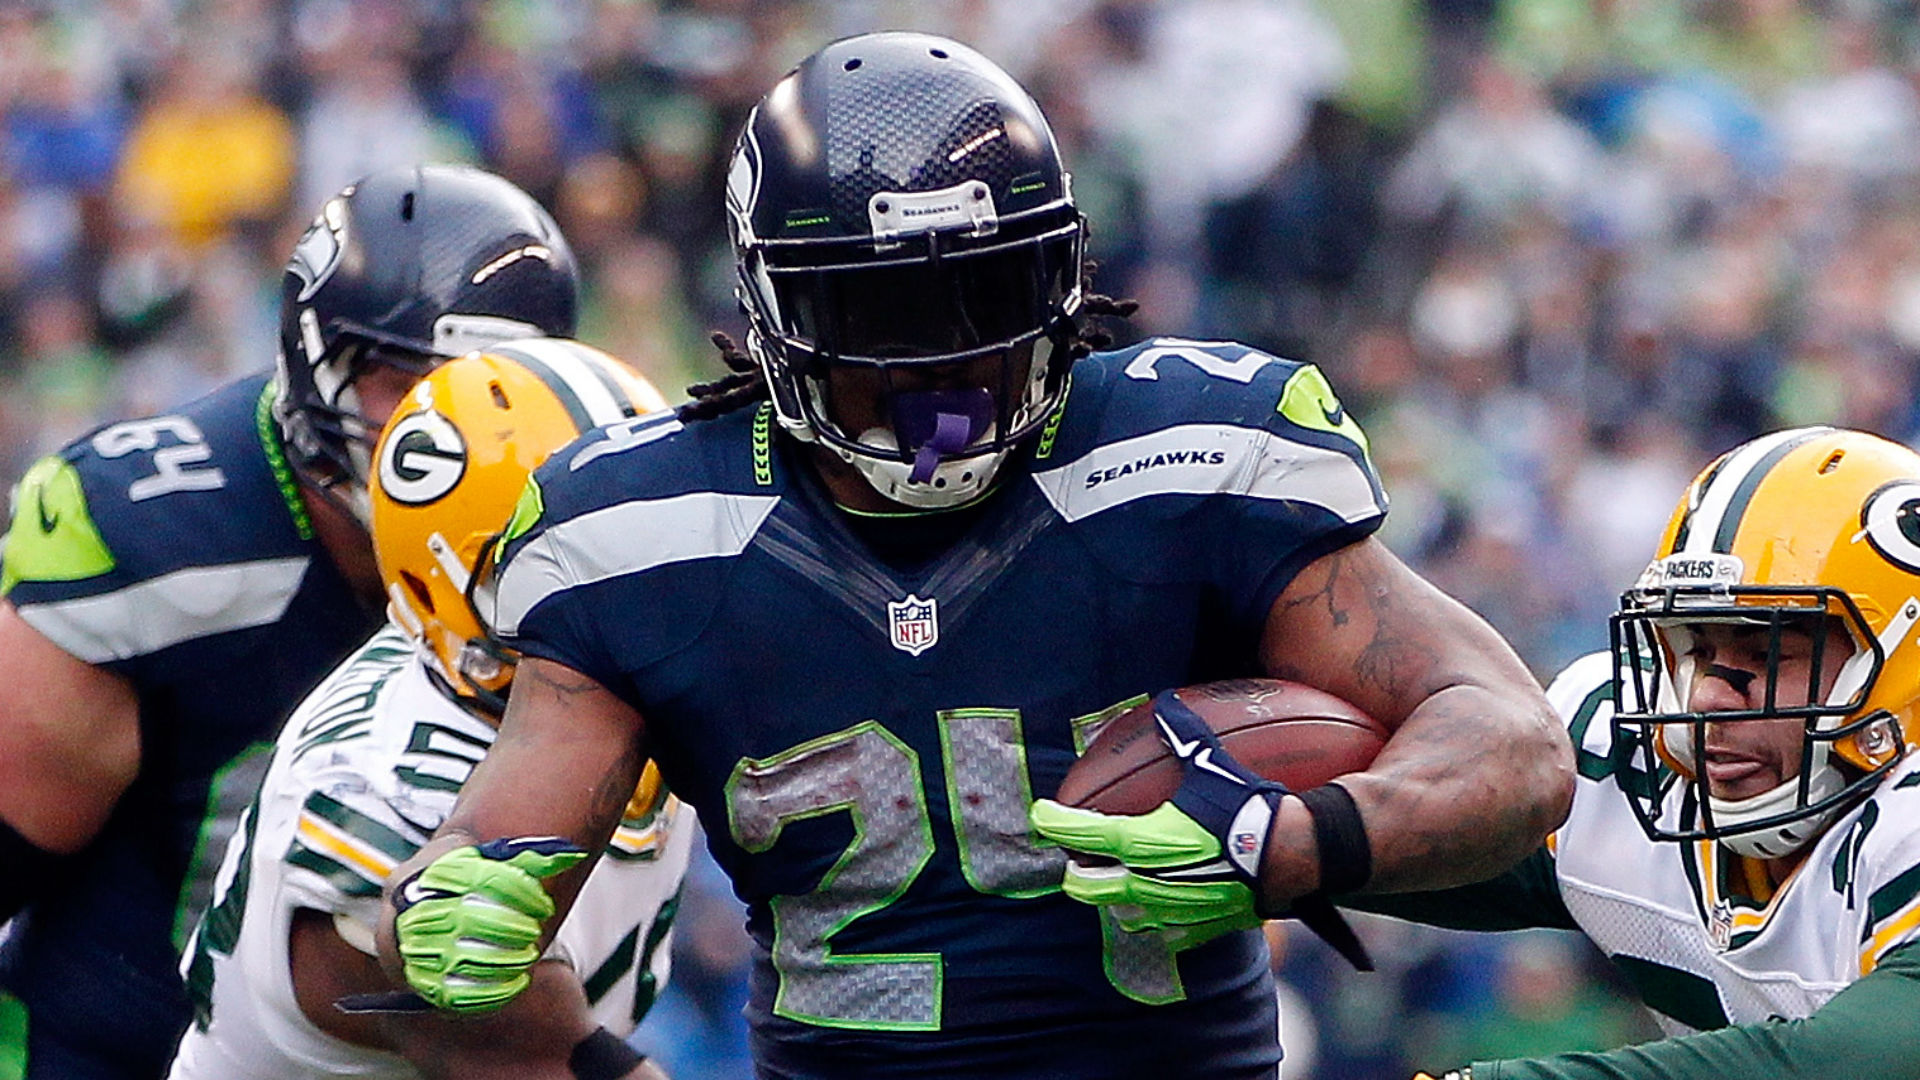 Super Bowl props - SN Fantasy handicaps running backs